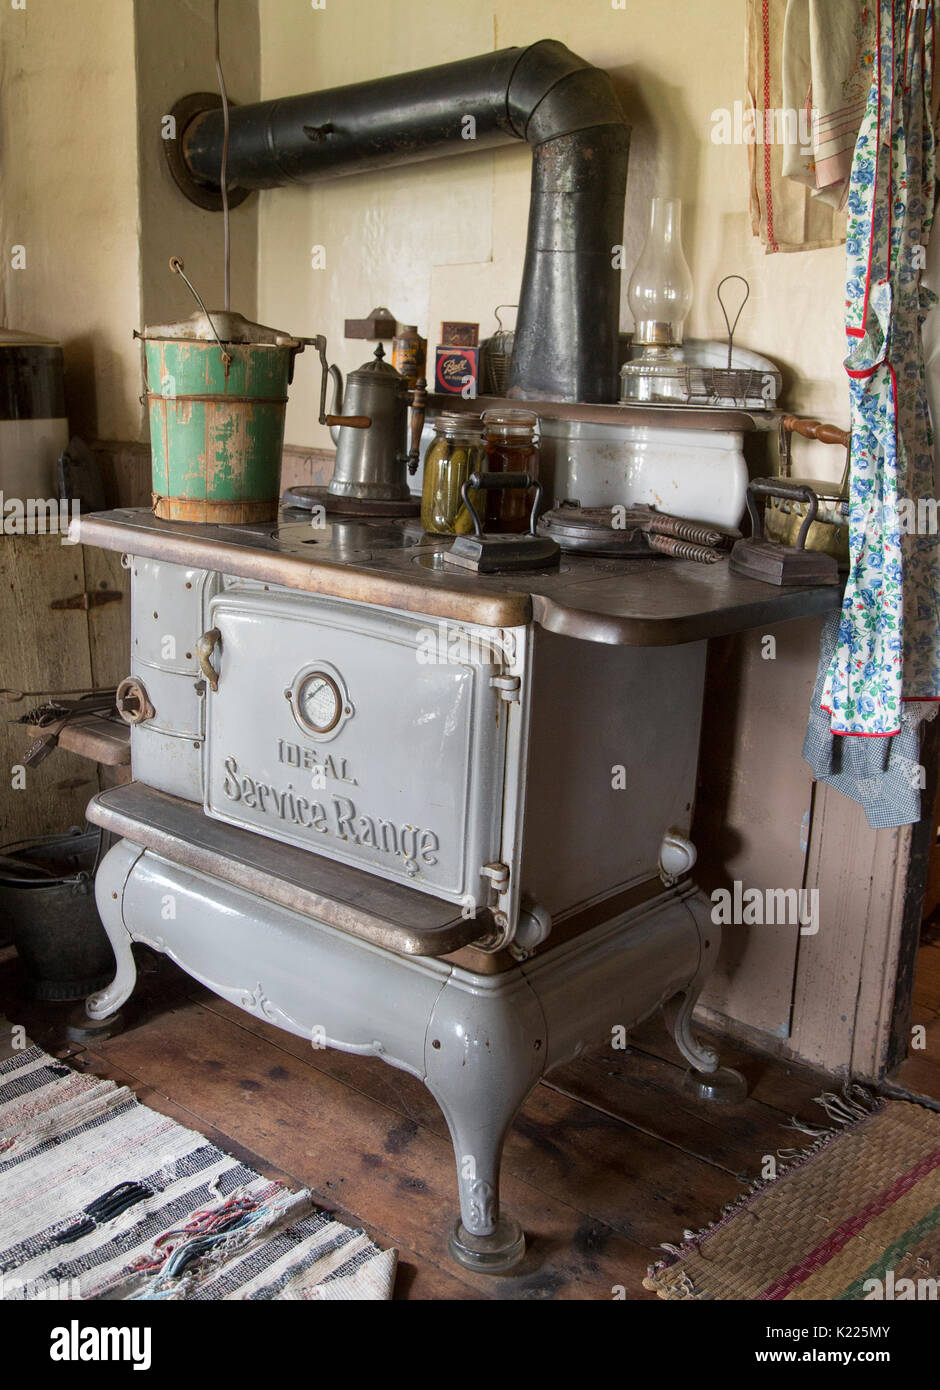 A 19th century stove at The Hopper-Goetschius house in Upper Saddle River, New Jersey - Stock Image